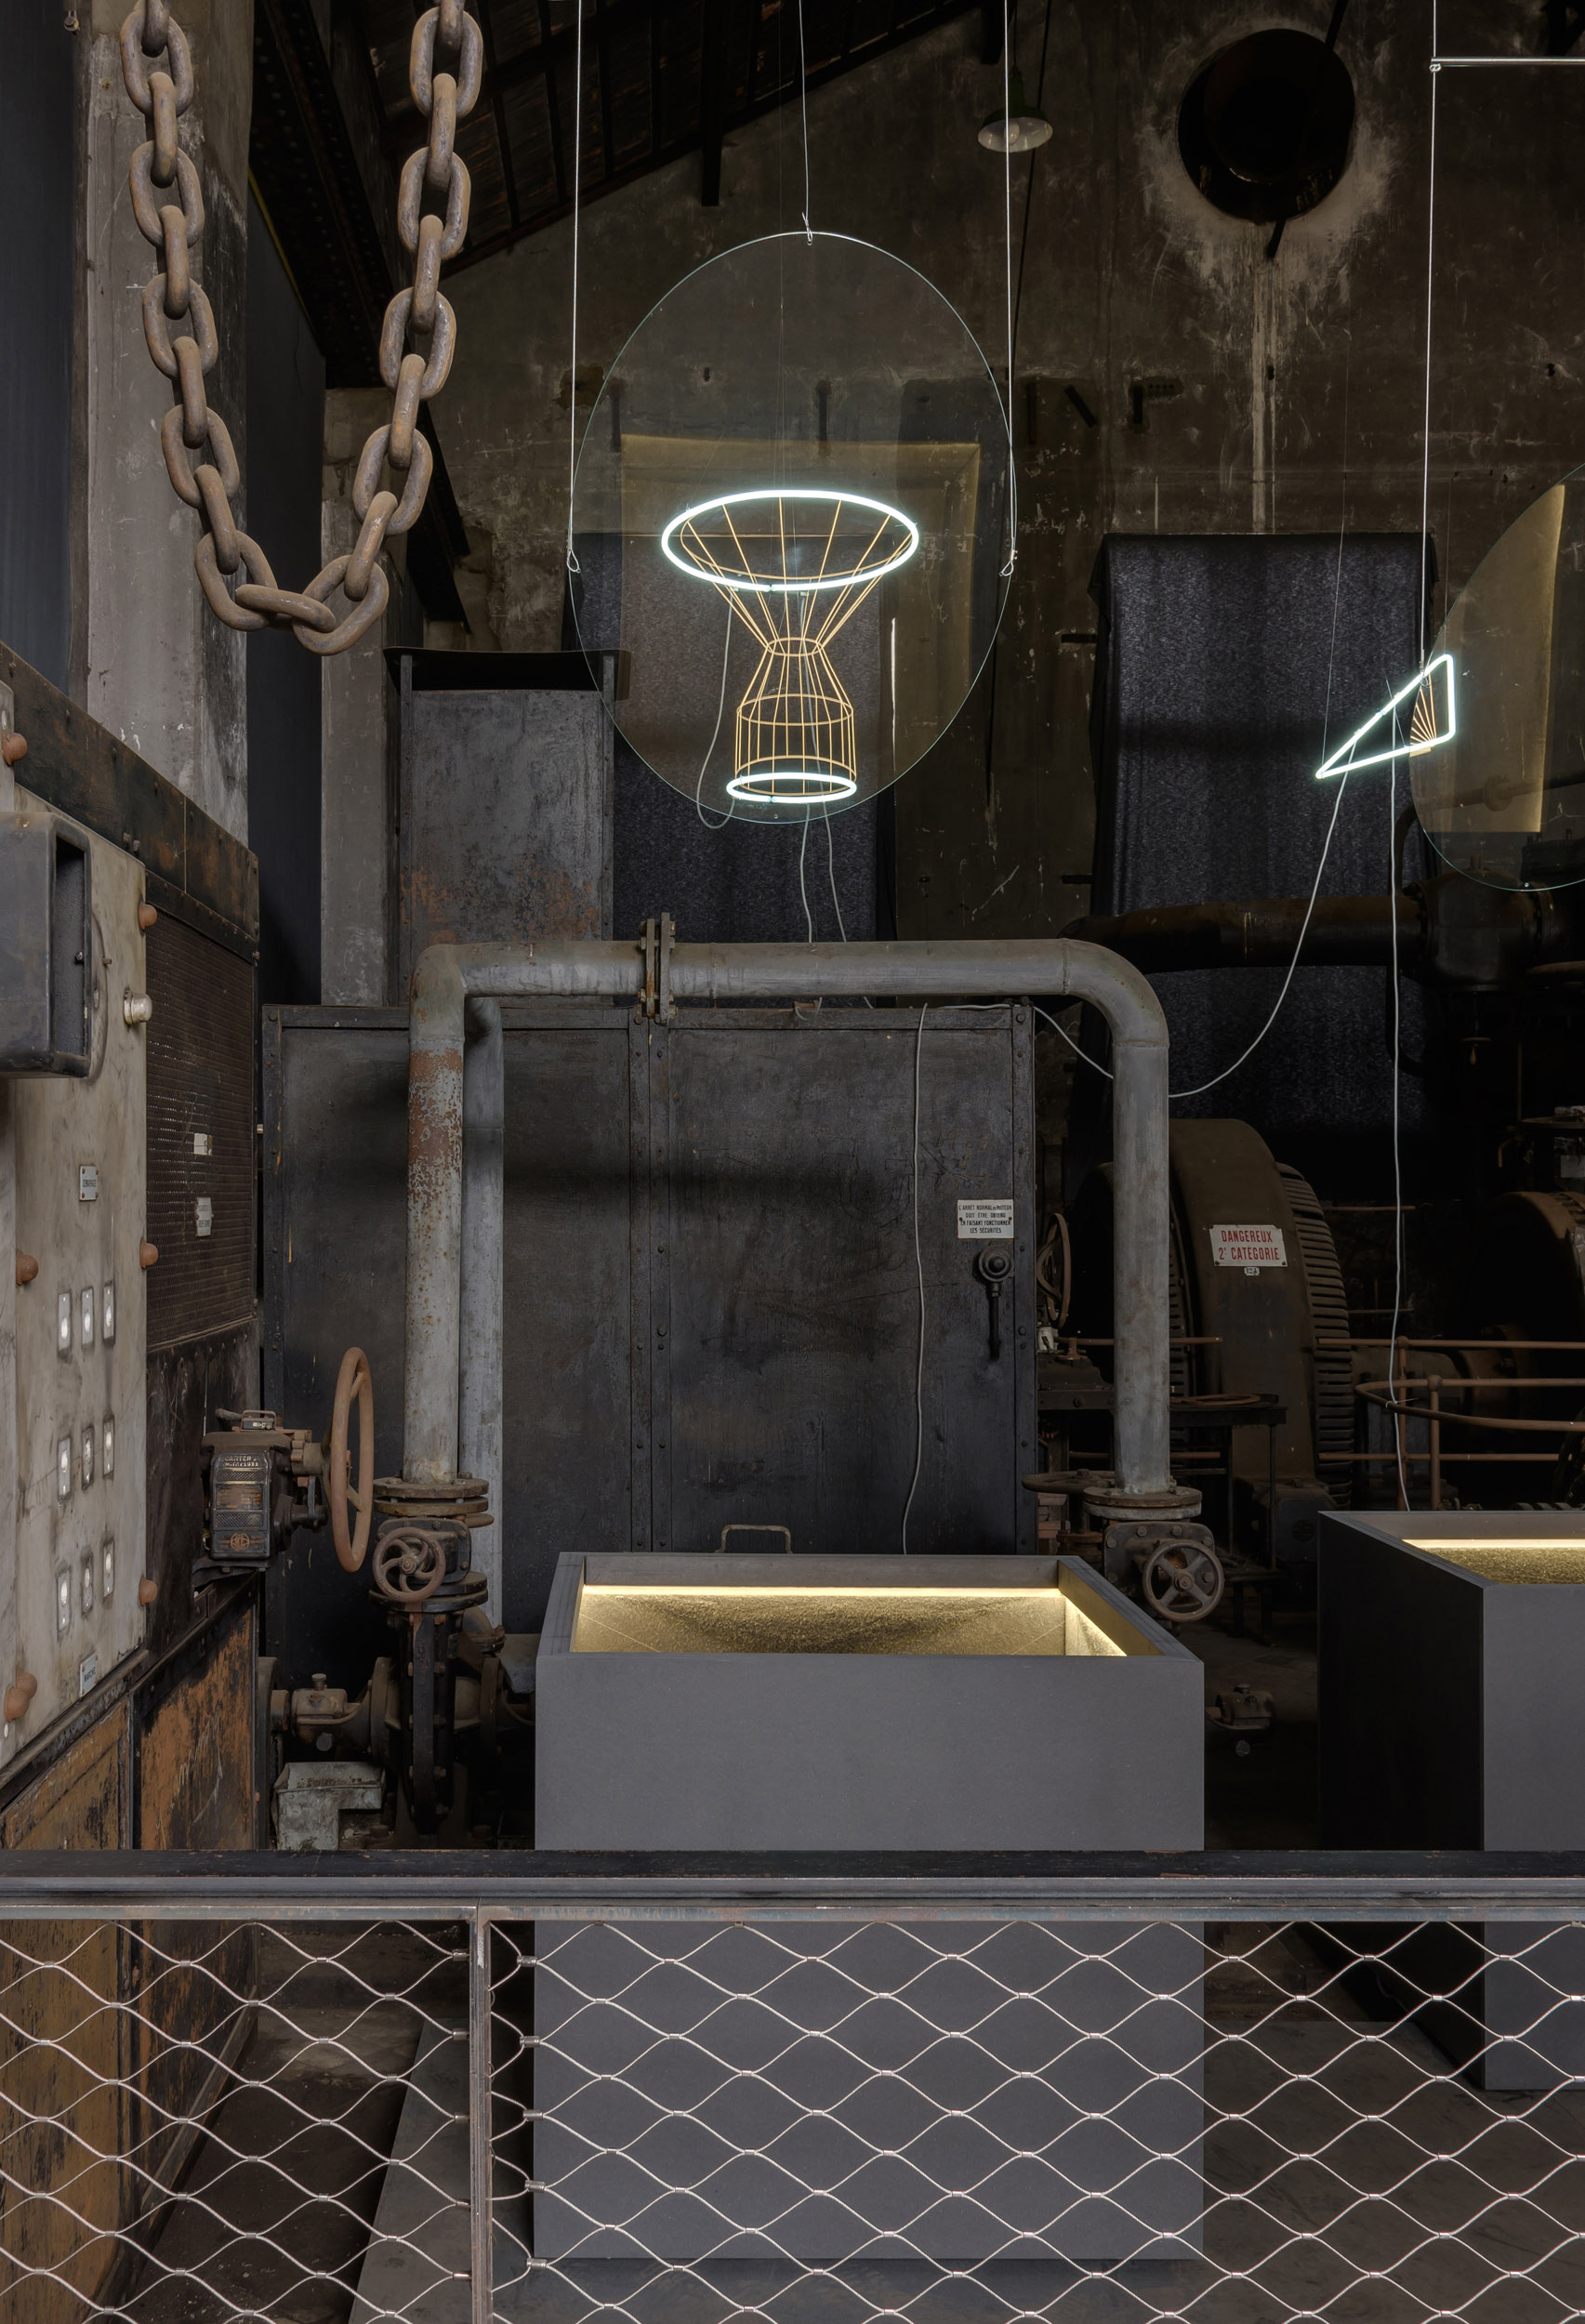 A chimney shaped wireframe sculpture appears as a reflection around two neon rings